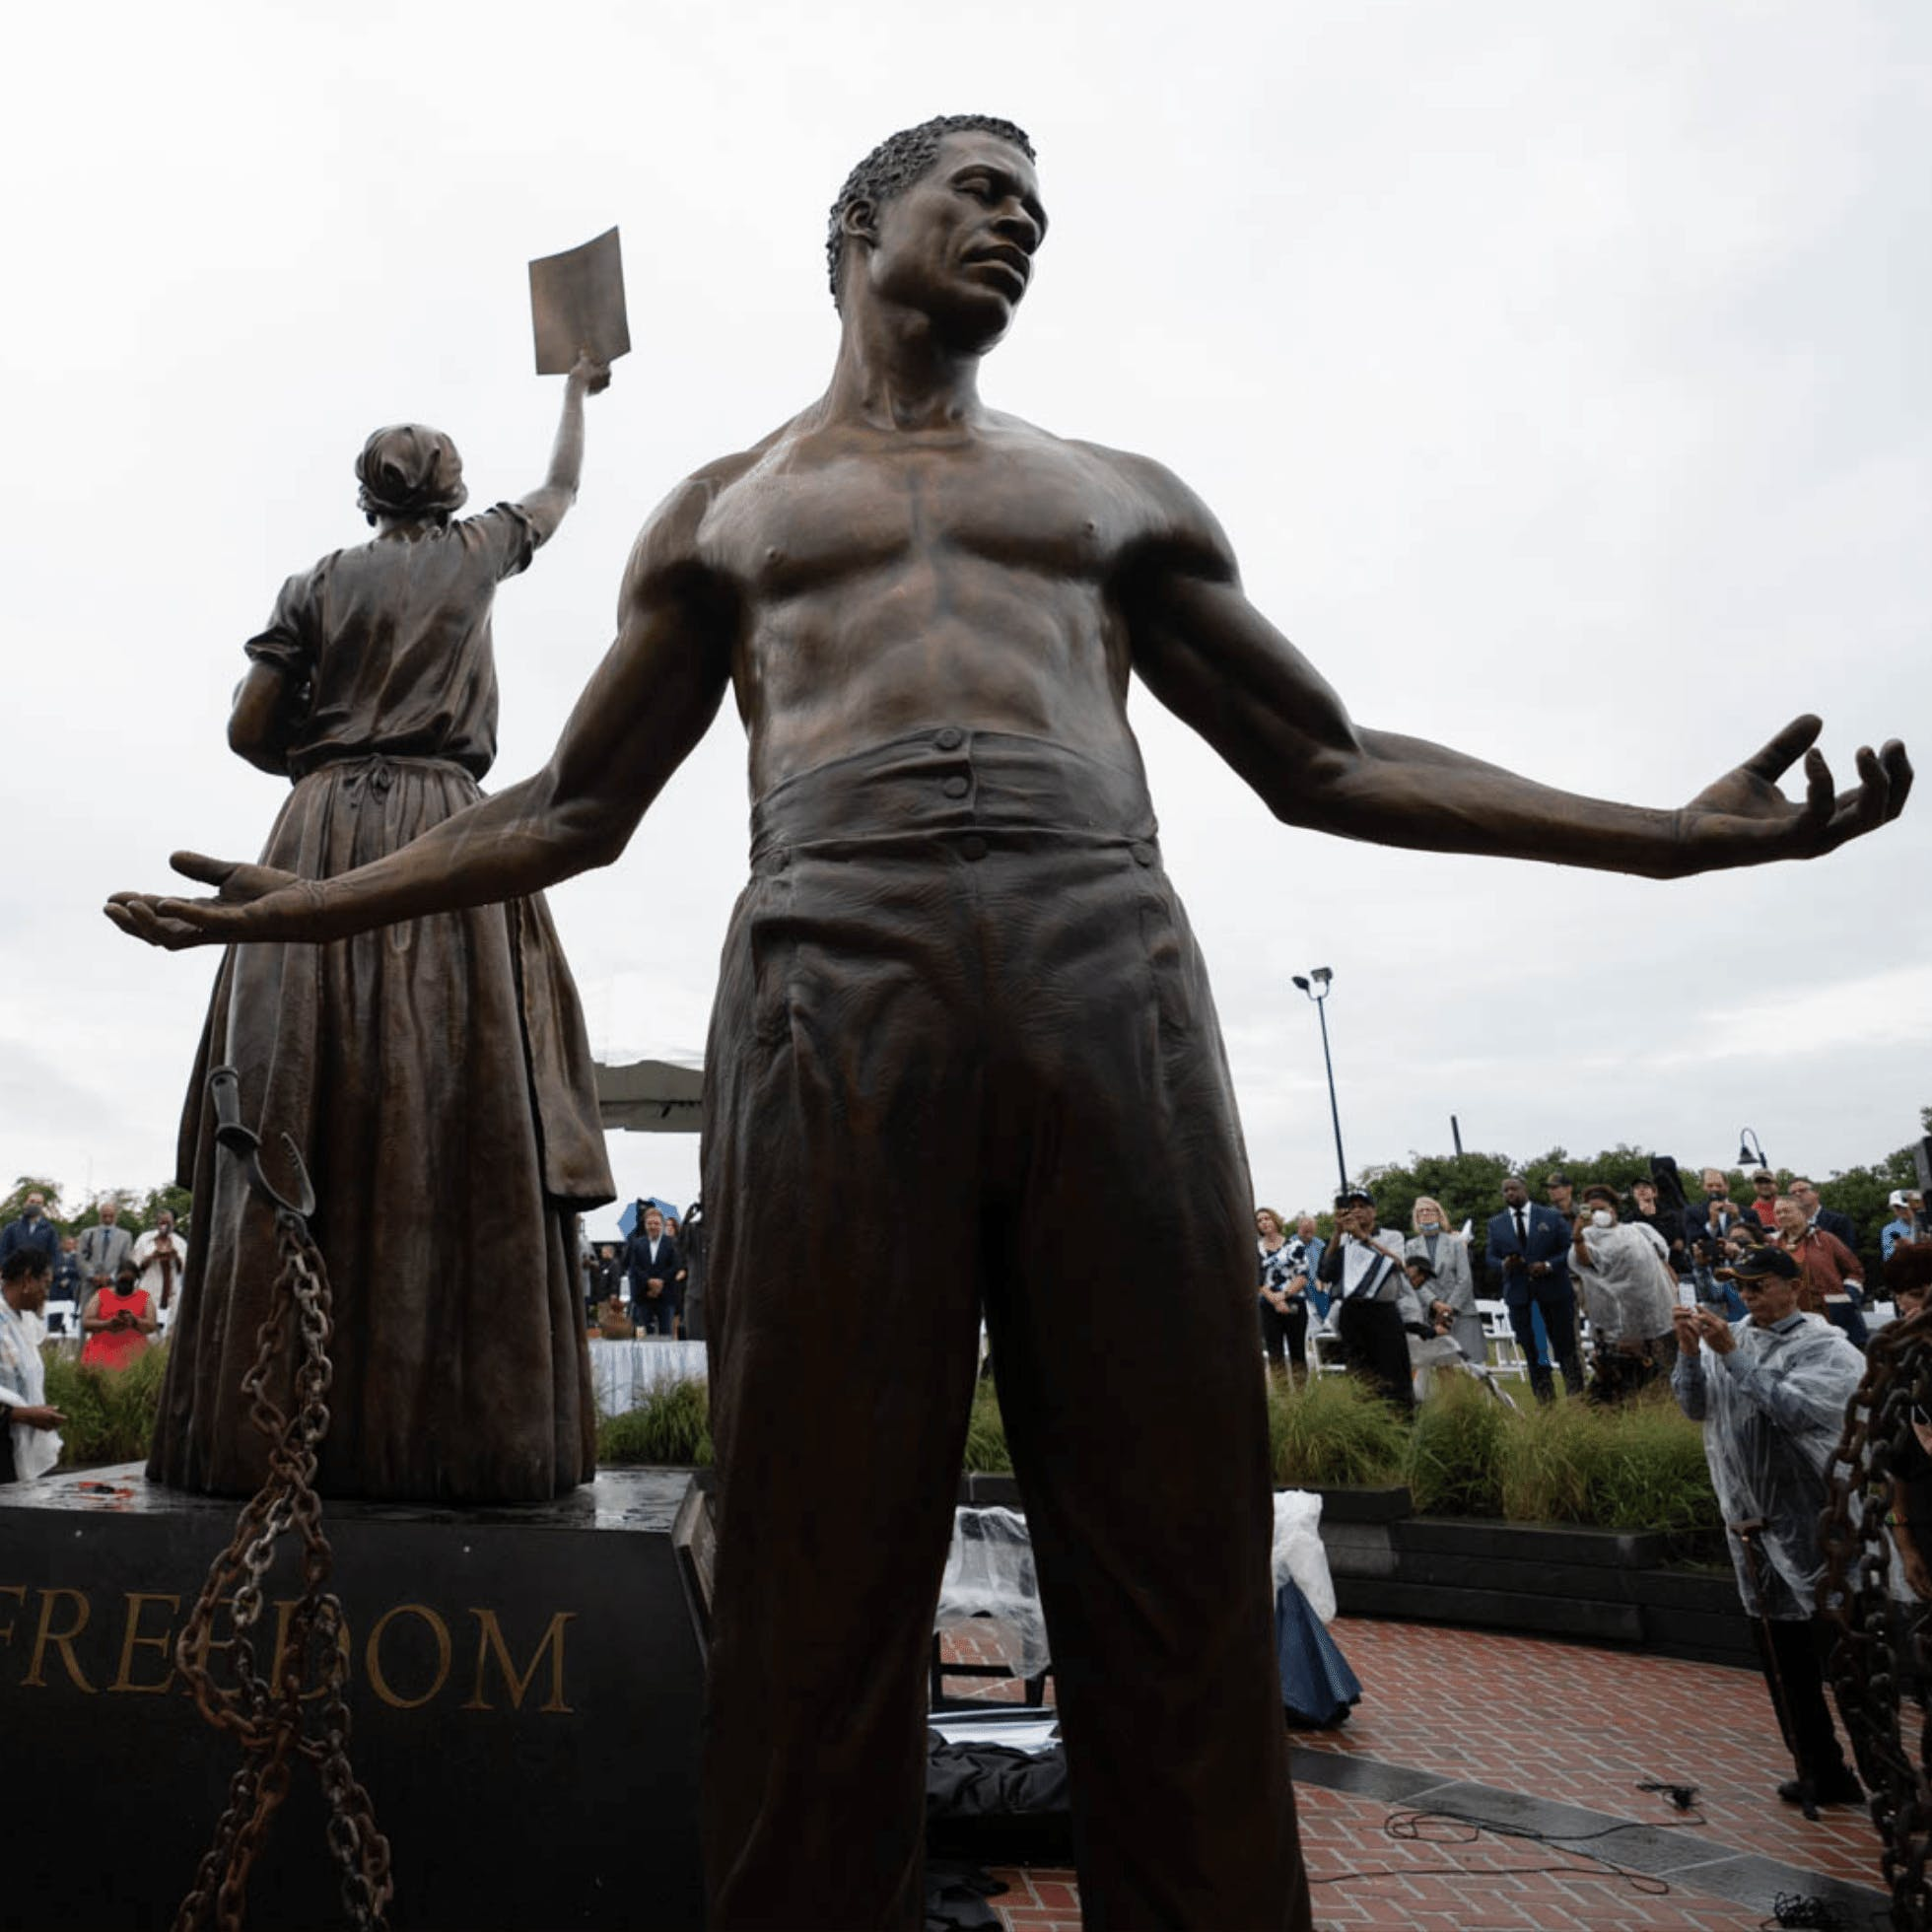 Front view of the freed male slave statue depicted in the Emancipation and Freedom Monument on Brown's Island